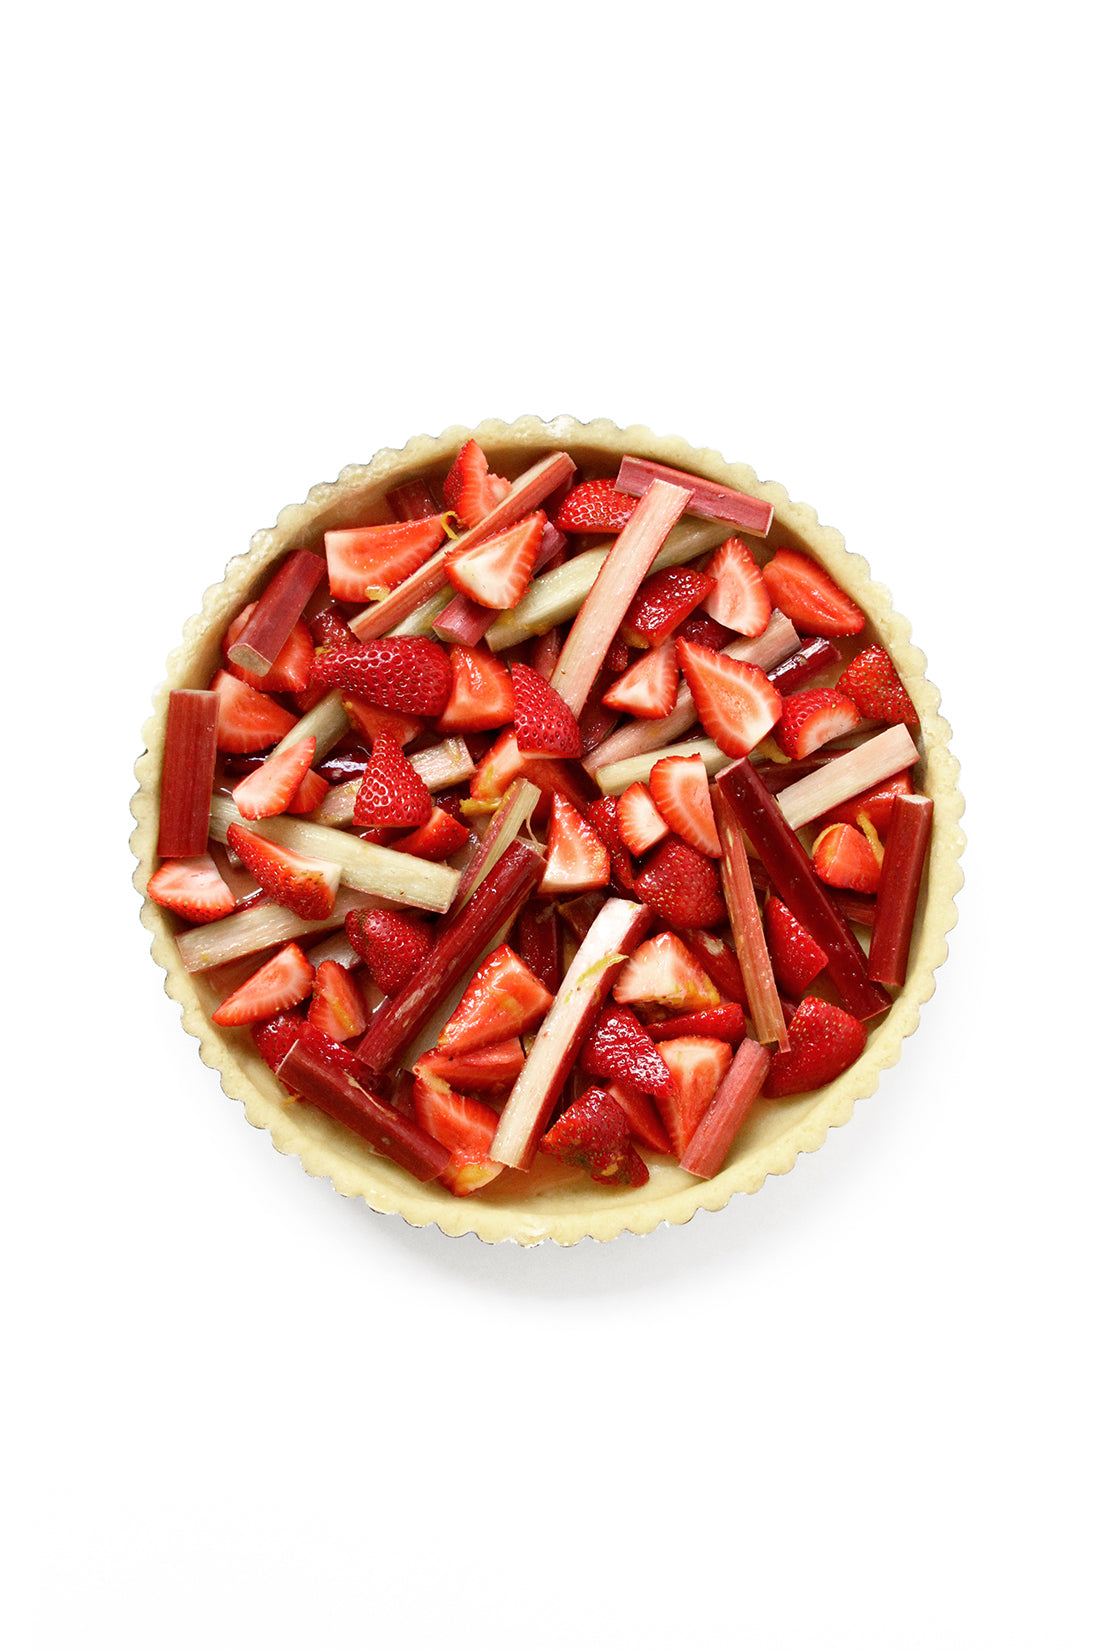 Image from above of an uncooked Miss Jones Baking Co Summer Strawberry + Rhubarb Tart